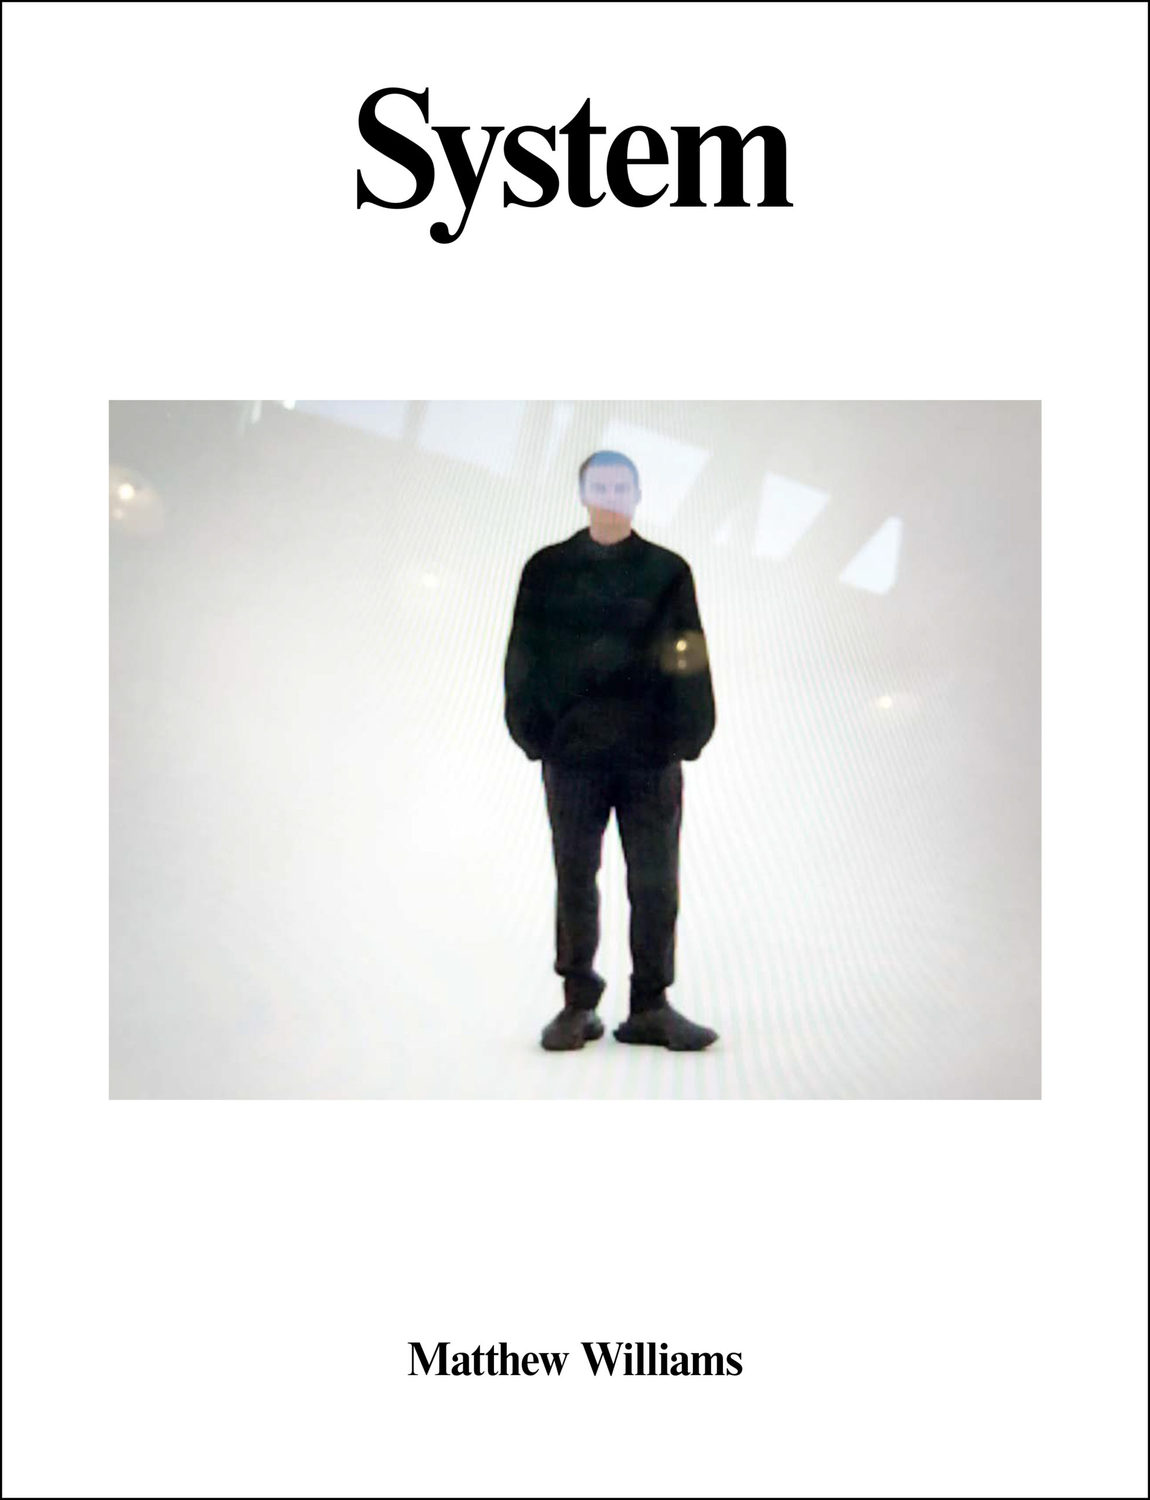 SYSTEM15-COVER-Matthew-Williams-scaled.jpg